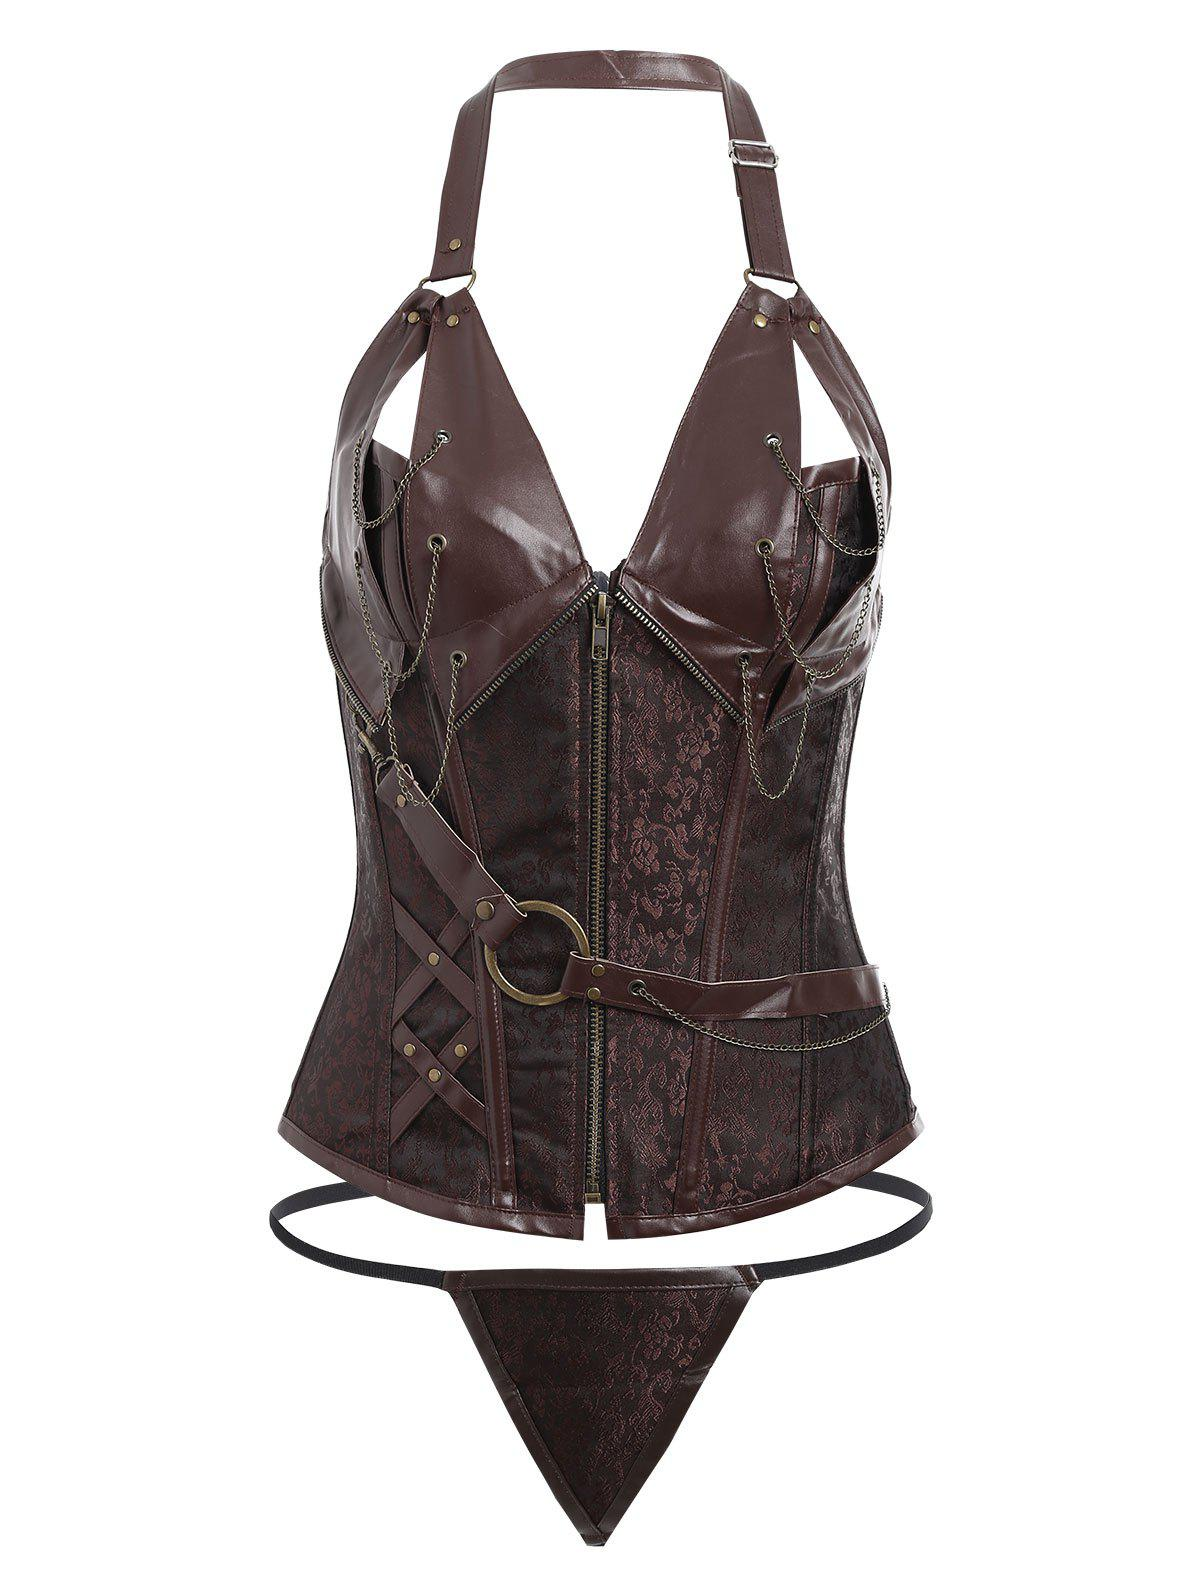 Halter Plus Size Vintage Zip Up CorsetWOMEN<br><br>Size: 6XL; Color: CHOCOLATE; Material: Polyester,Spandex; Pattern Type: Solid; Embellishment: Chains,Criss-Cross,Zippers; Weight: 0.4200kg; Package Contents: 1 x Corset  1 x T Back;